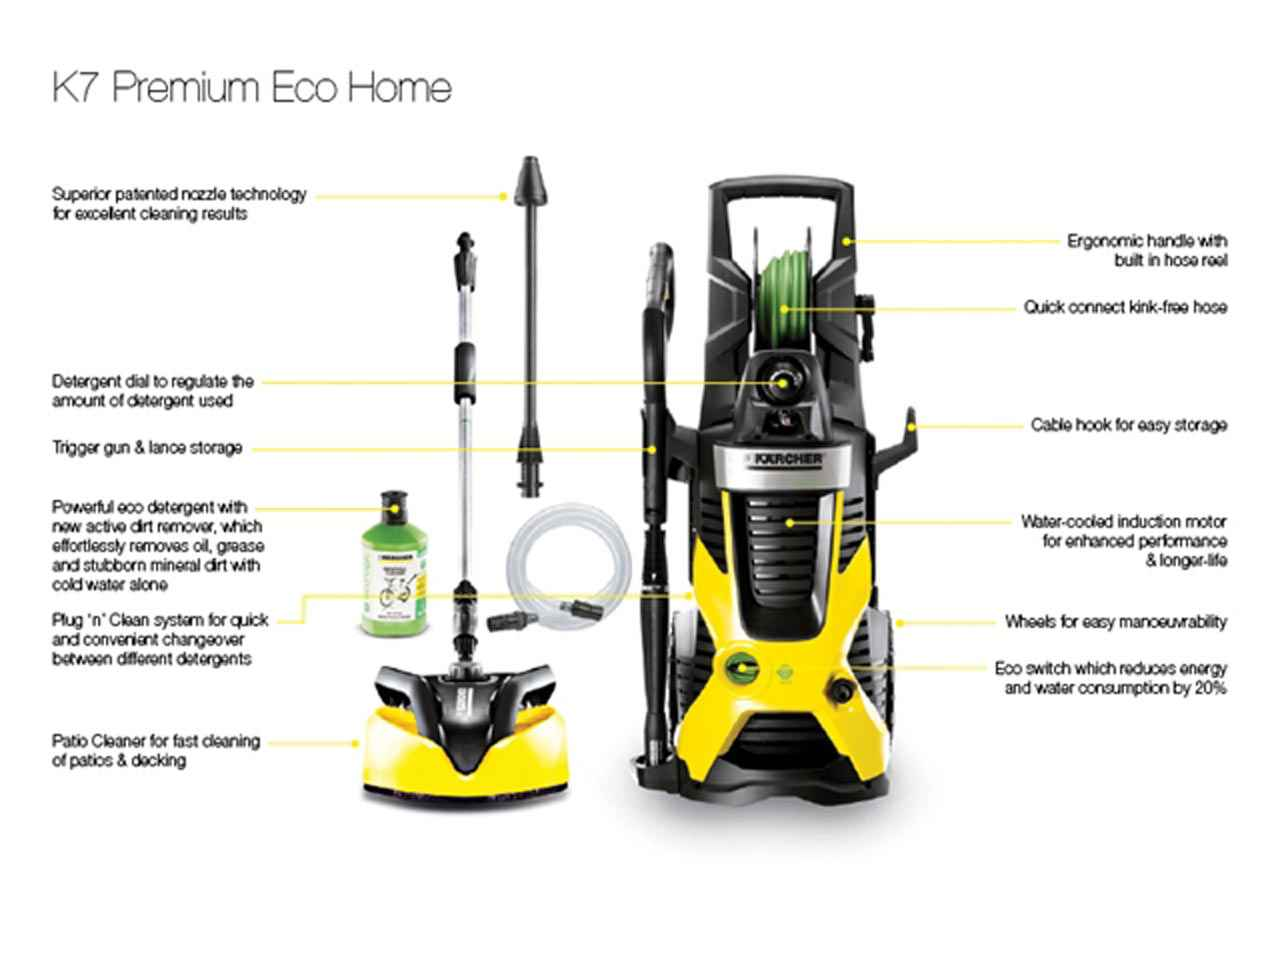 karcher k7 premium eco 240v home pressure washer 160 bar. Black Bedroom Furniture Sets. Home Design Ideas